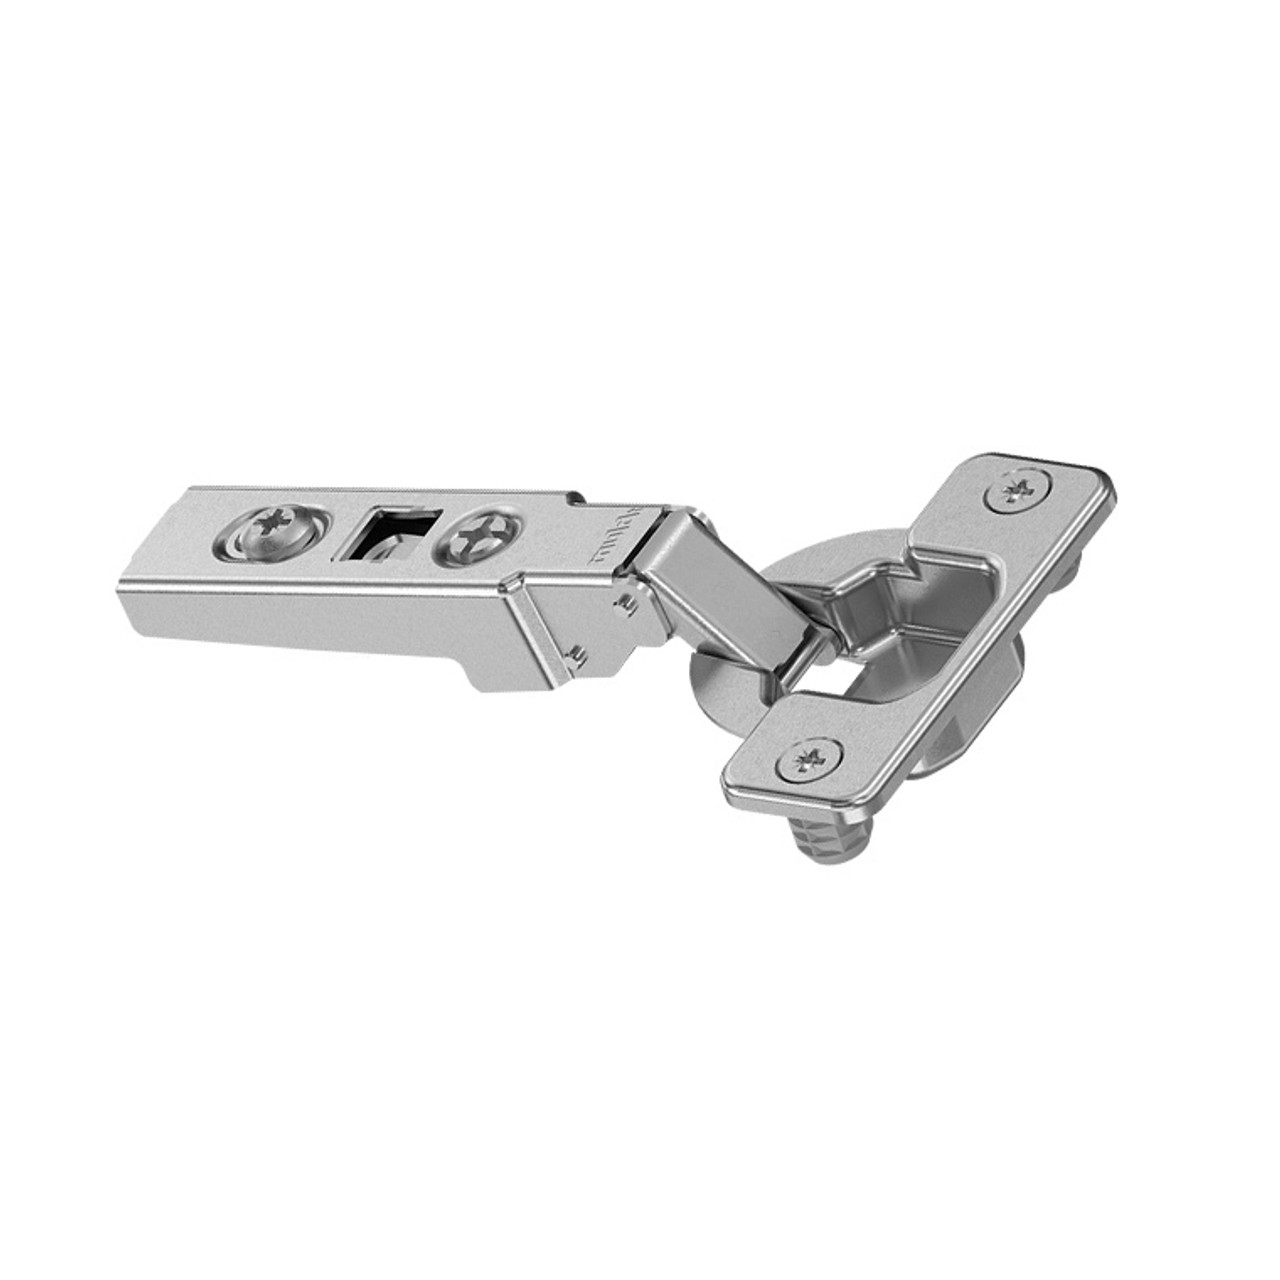 Unsprung KNOCK-IN CLIP Hinge 100° - Overlay